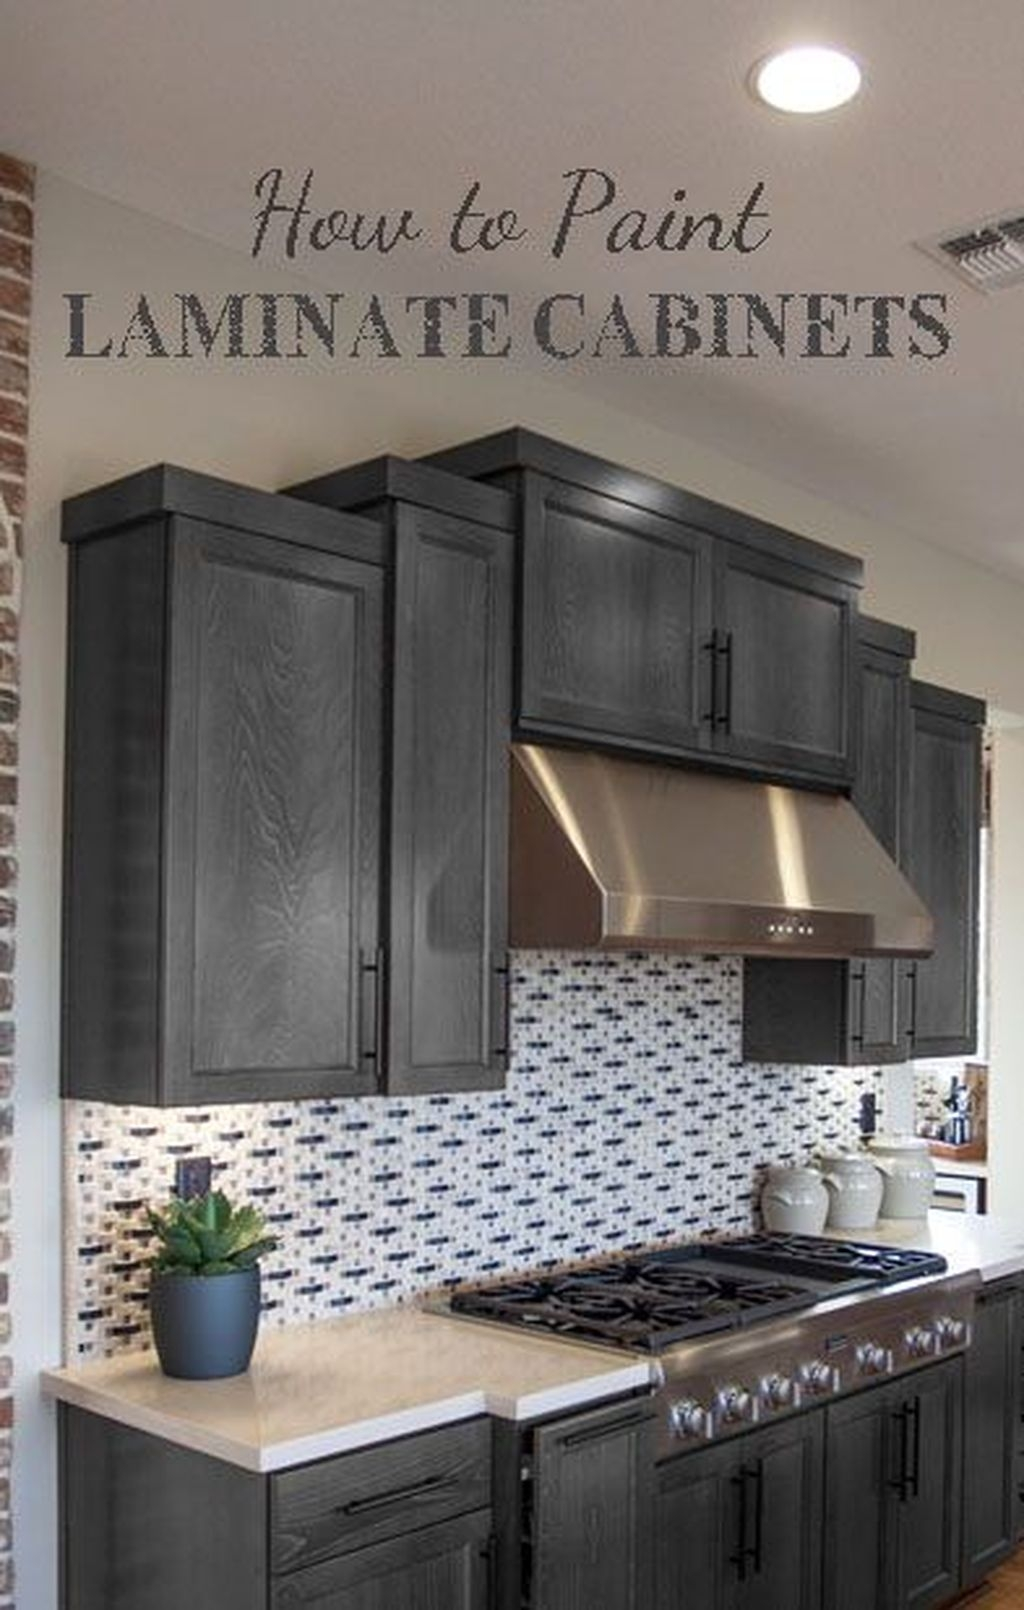 Easy Kitchen Cabinet Painting Ideas34